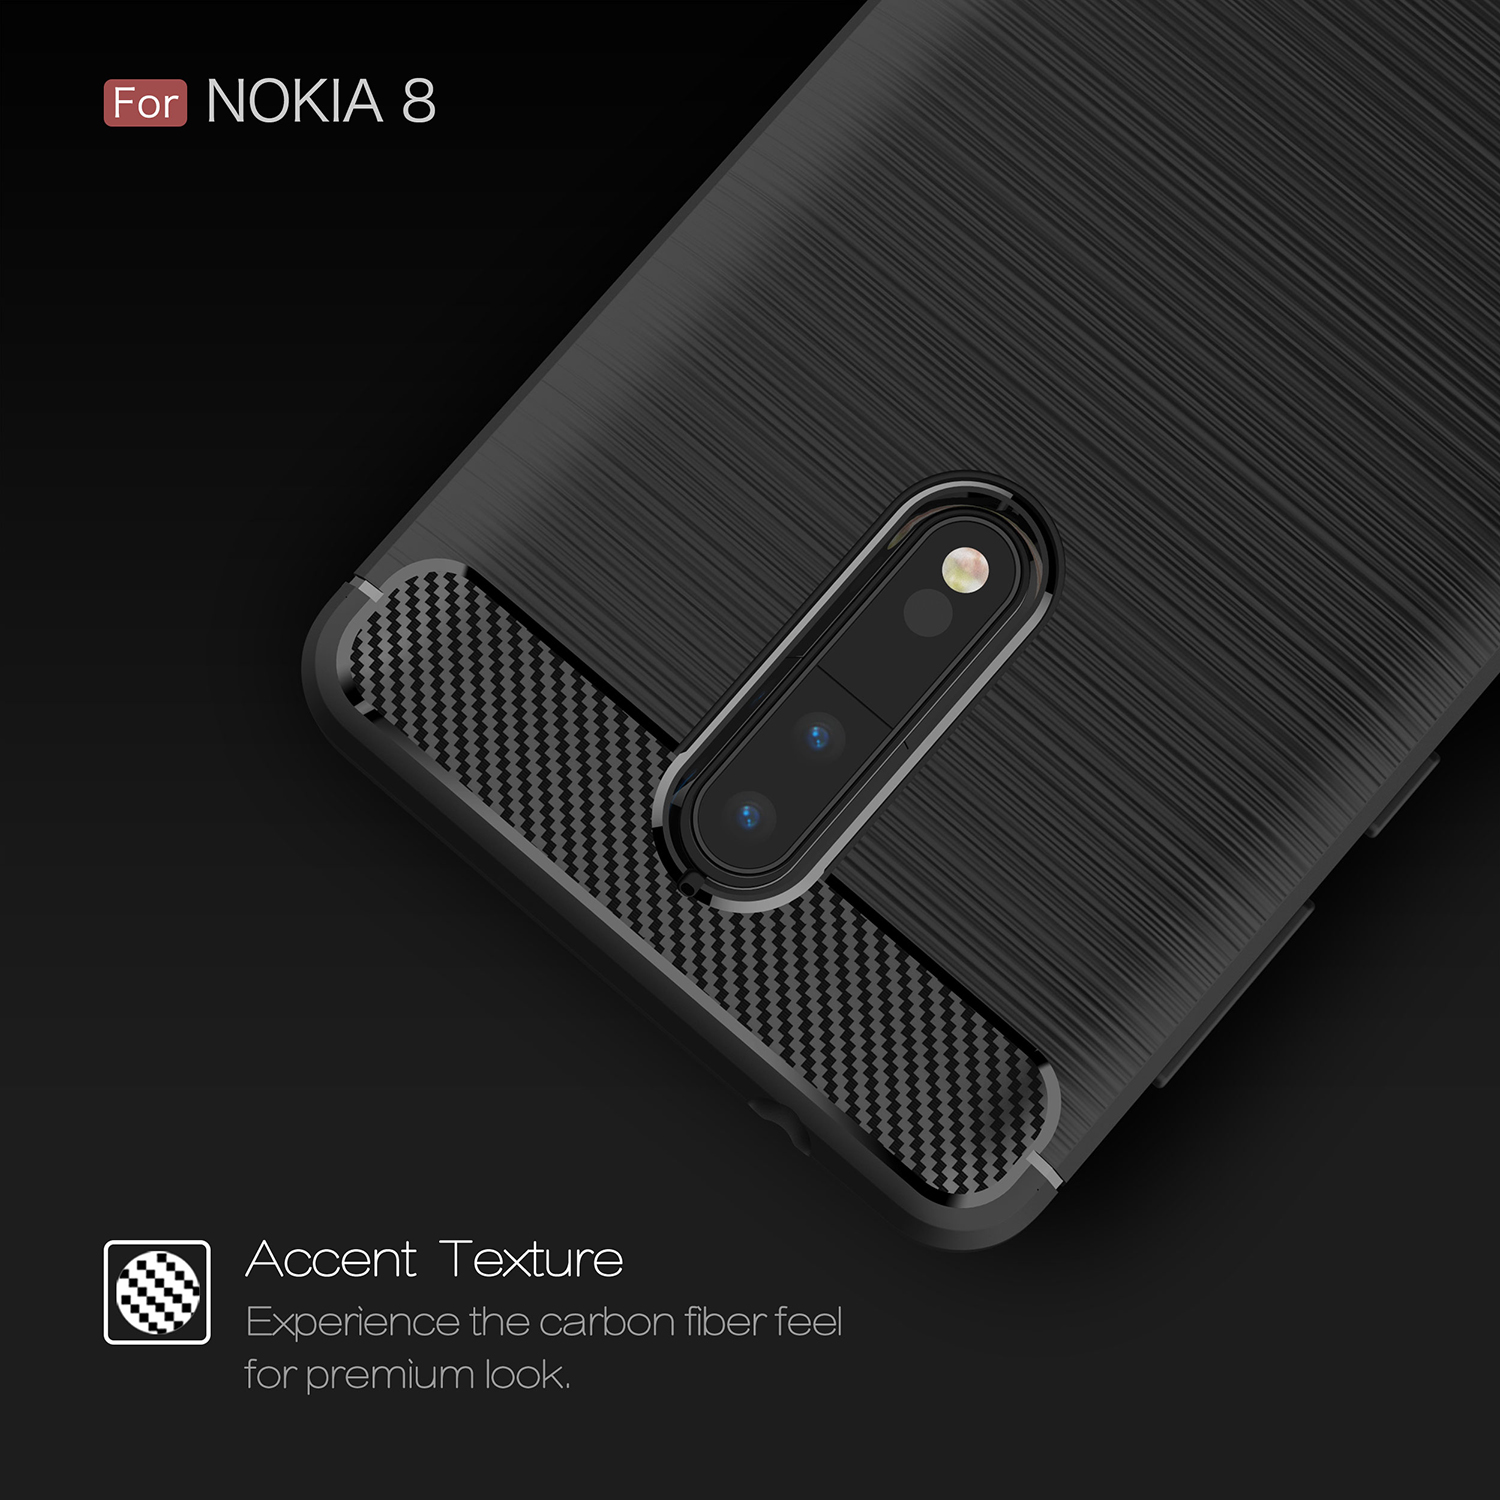 Boys' Shoes Mokoemi Ultra Thin Slim Clear Soft Tpu 5.3for Nokia 8 Case For Nokia 8 Cell Phone Case Cover